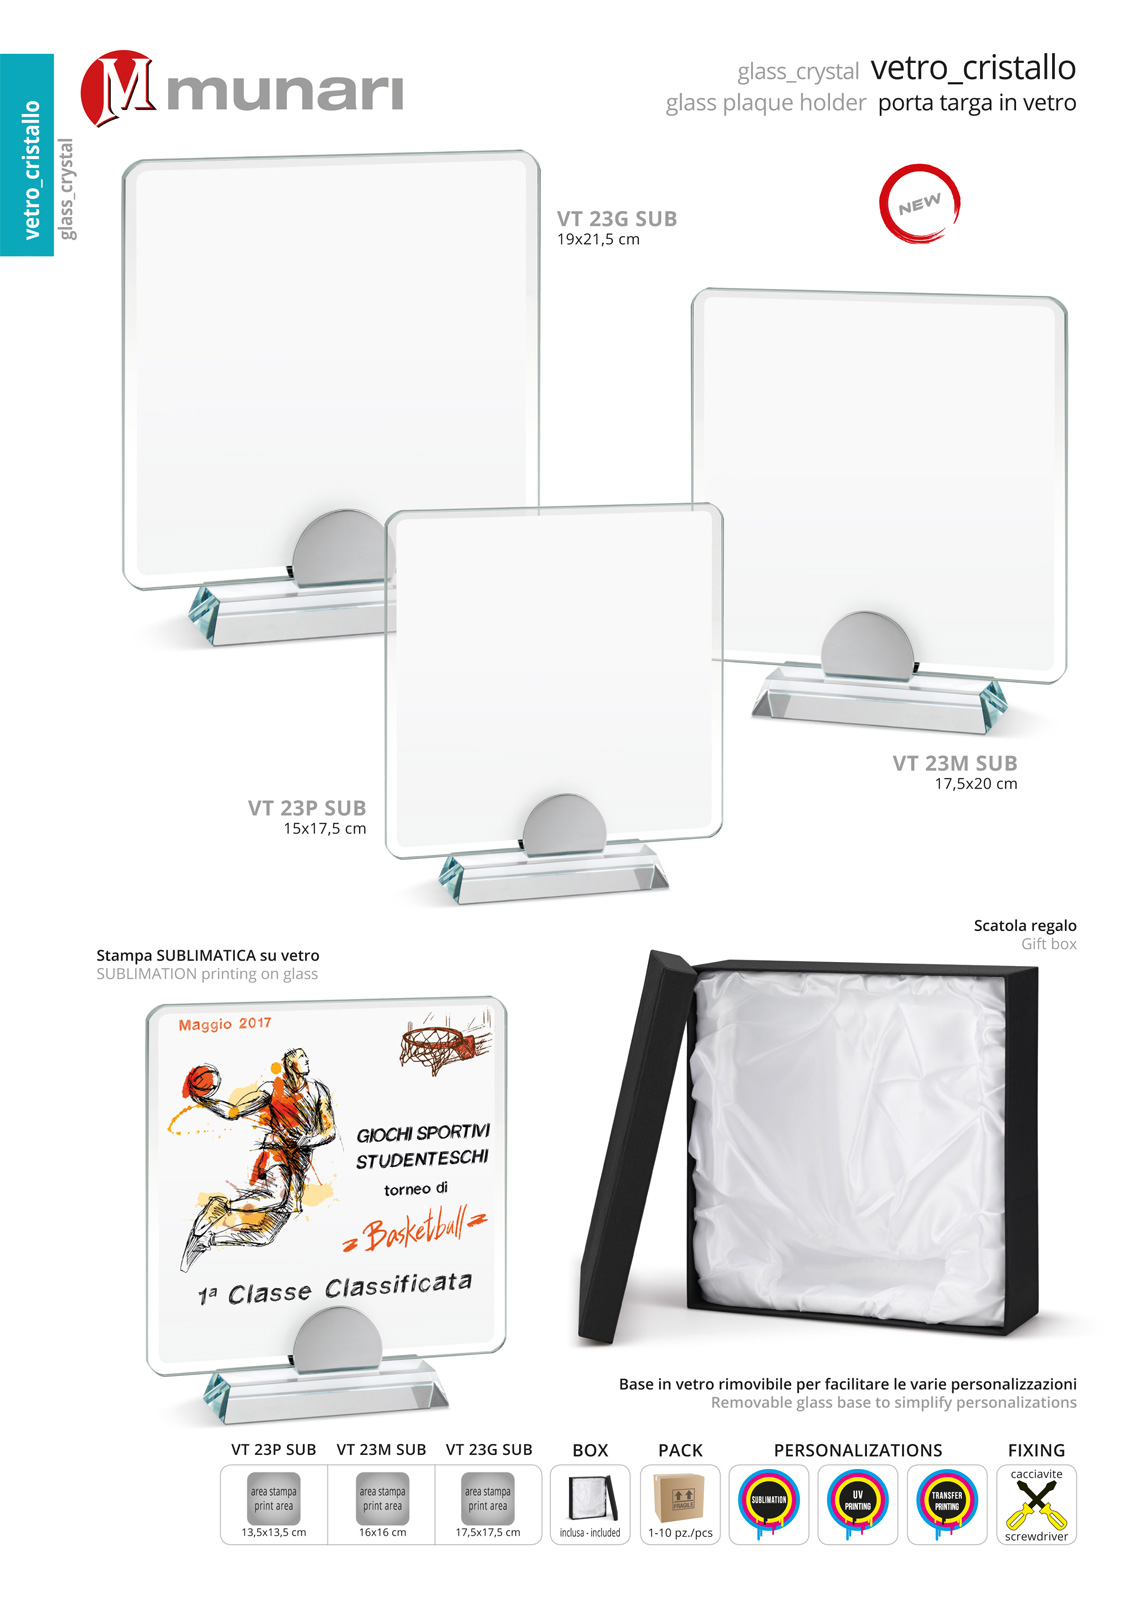 Sublimation glass plaque holder with glass base series VT 23 SUB